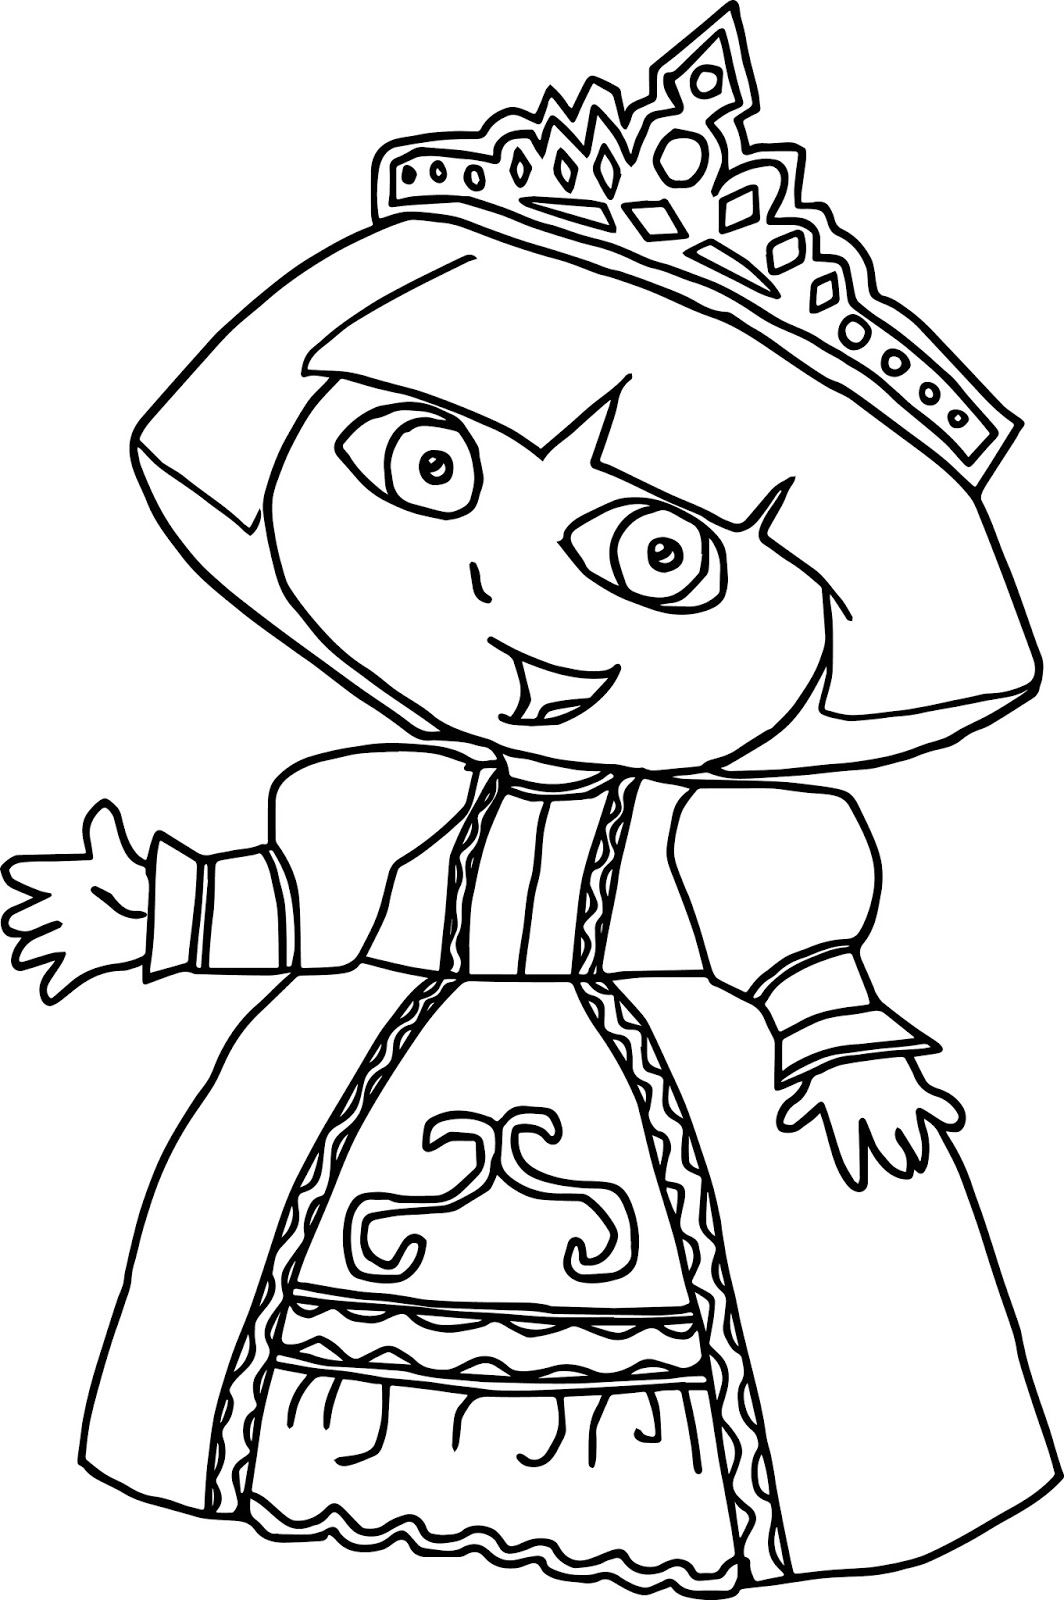 Dora The Explorer Coloring Pages Coloring Pictures